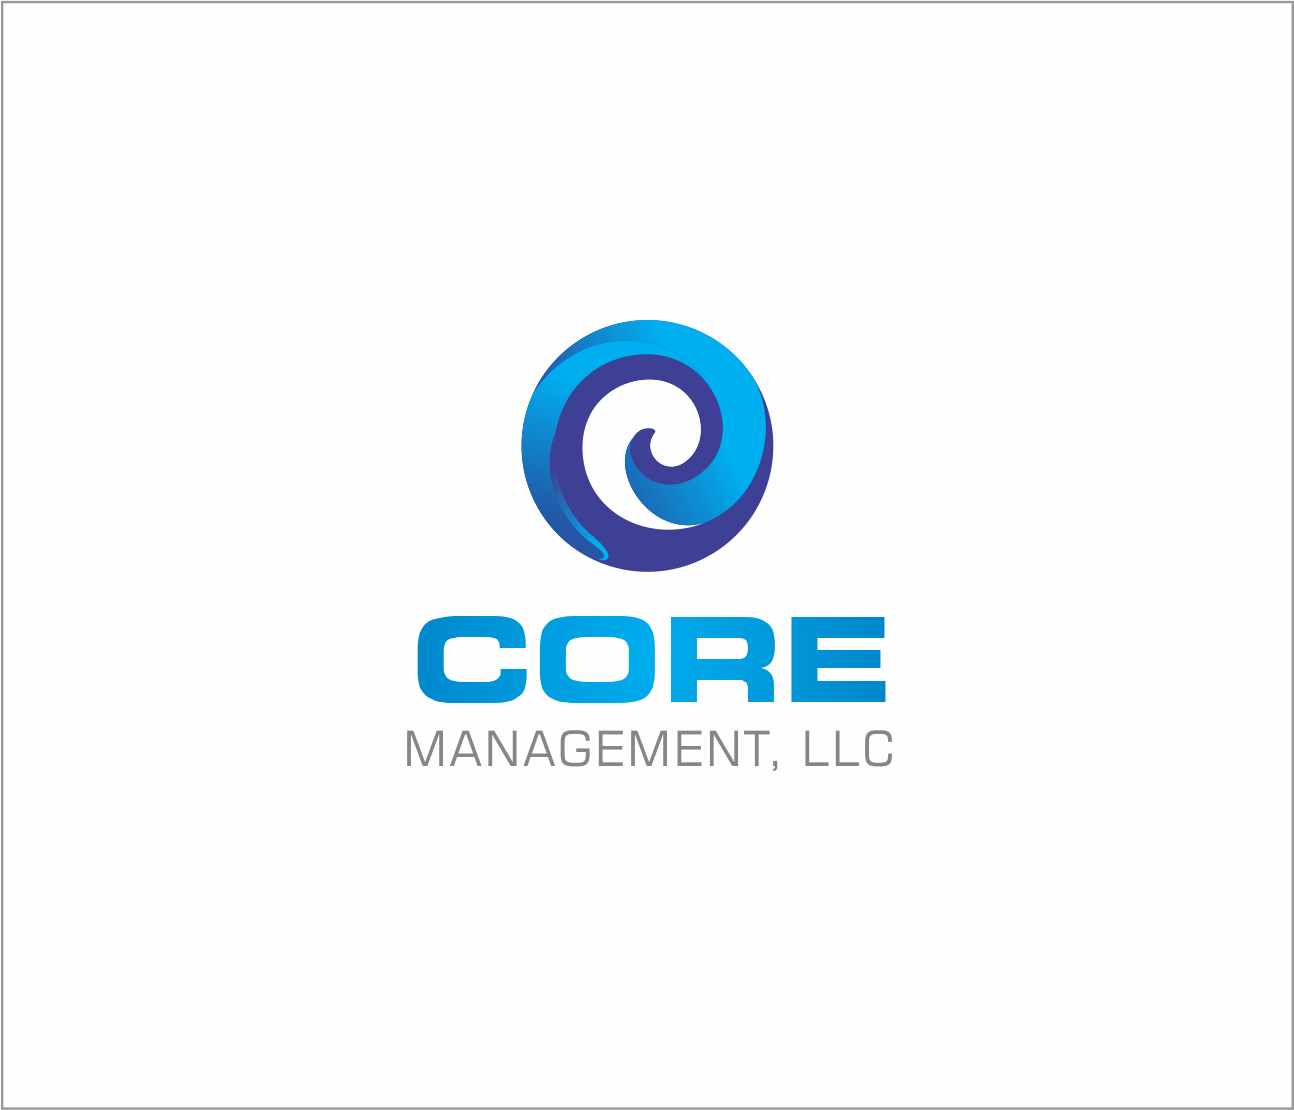 Logo Design by Armada Jamaluddin - Entry No. 116 in the Logo Design Contest Creative Logo Design for CORE Management, LLC.